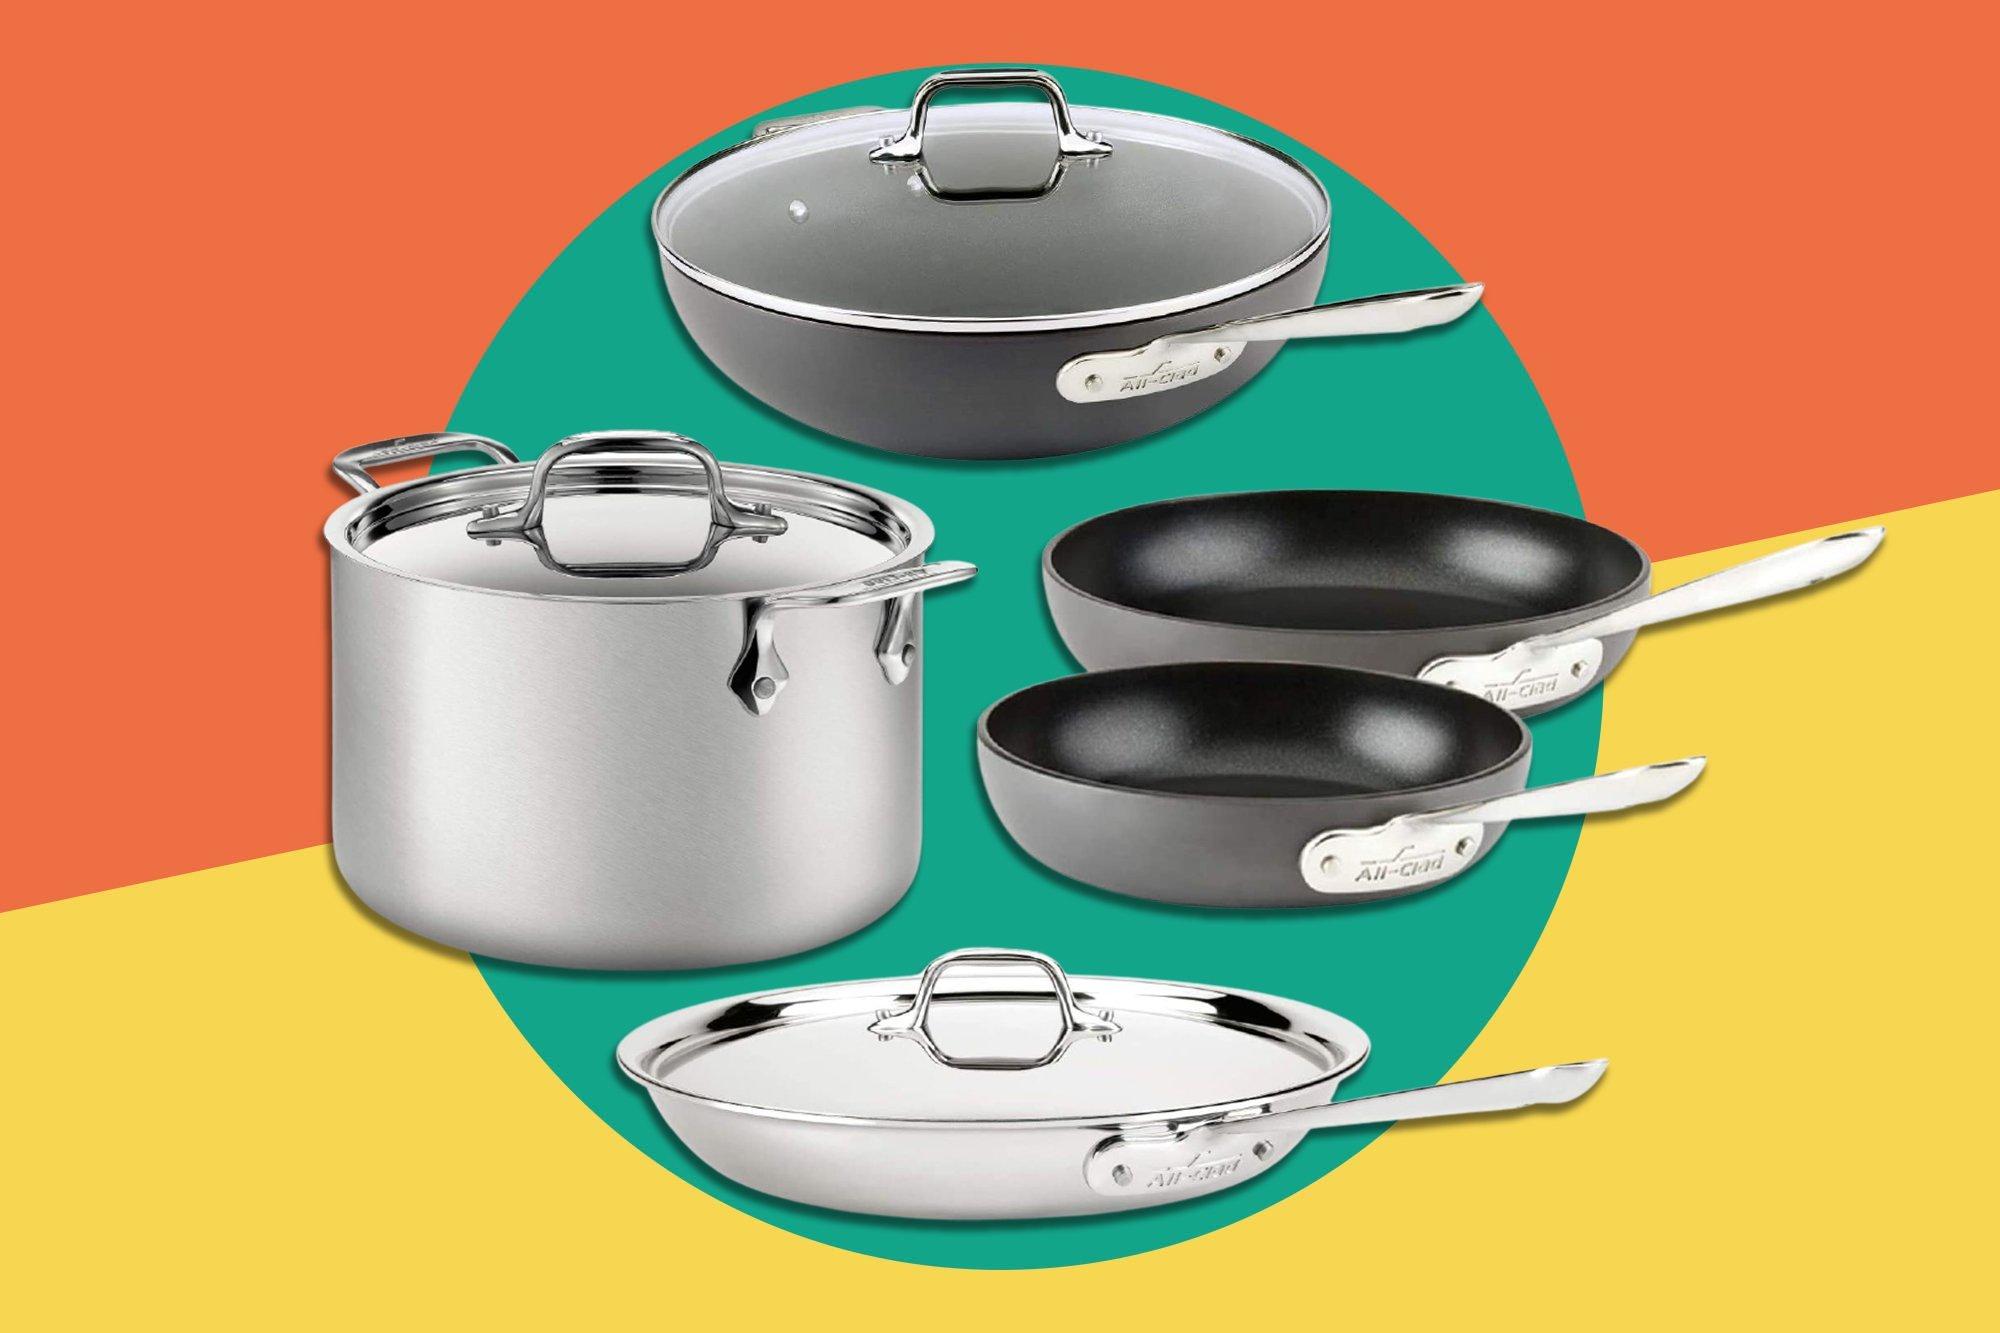 Amazon Has Slashed Tons of Prices on All-Clad Cookware for Prime Day-Including a Saucepan for $115 Less